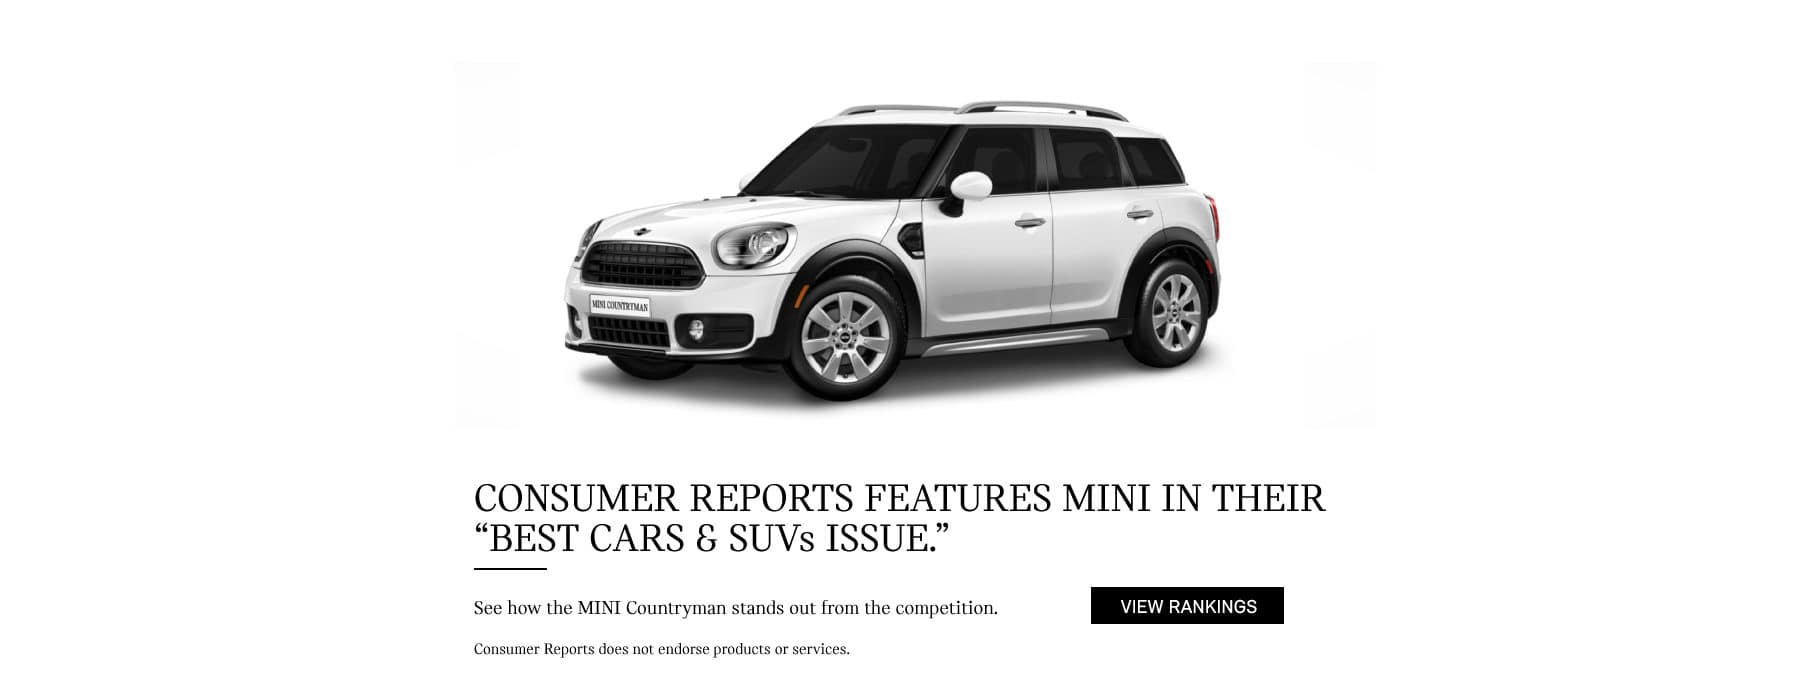 MINI Cooper Countryman Consumer Report